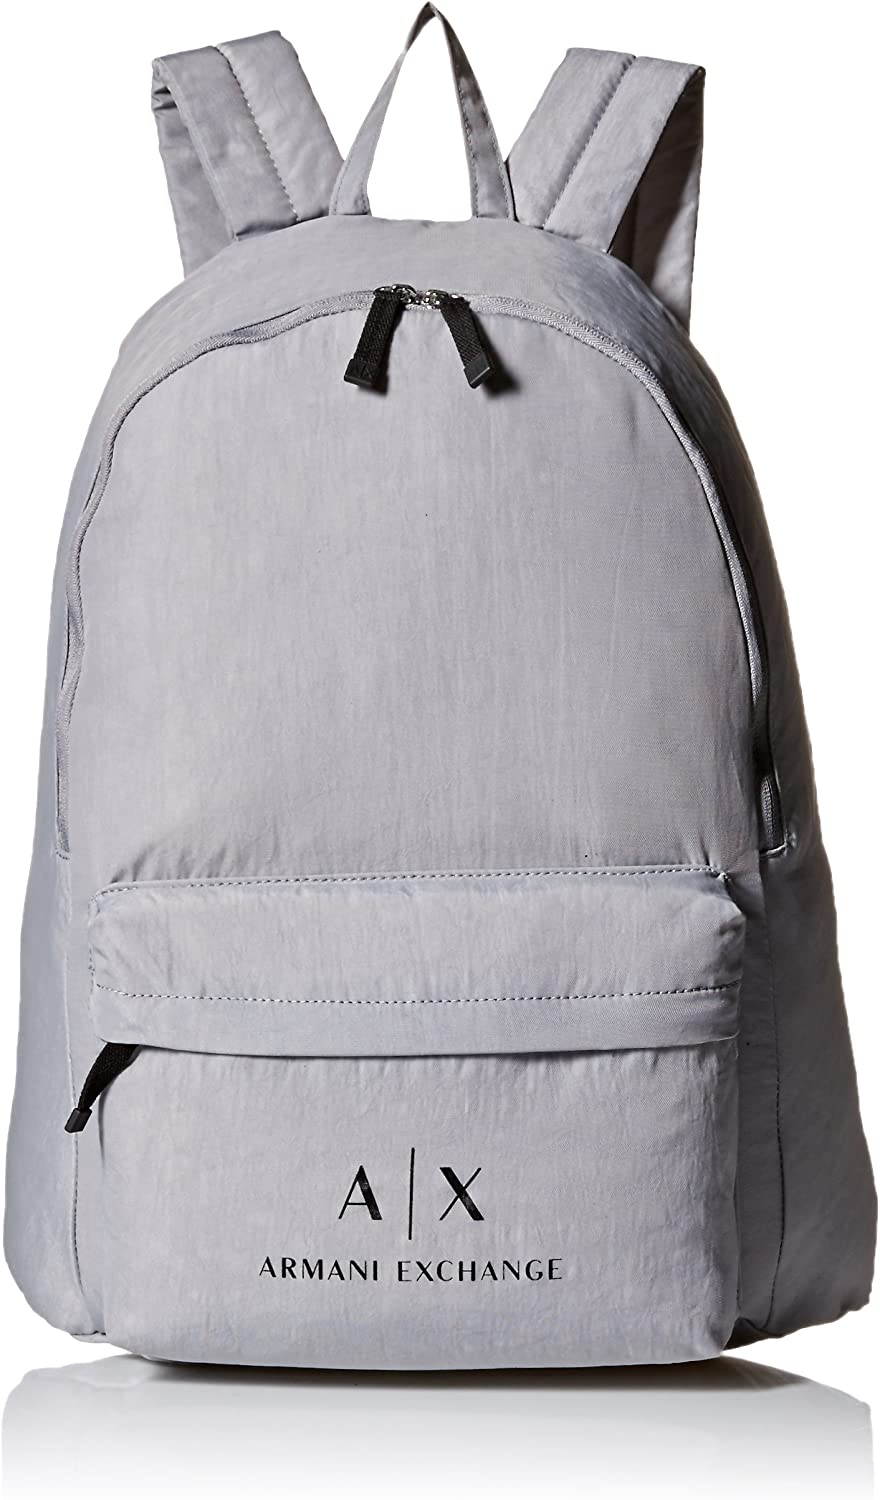 Armani Exchange Men's Crinkle Nylon Backpack